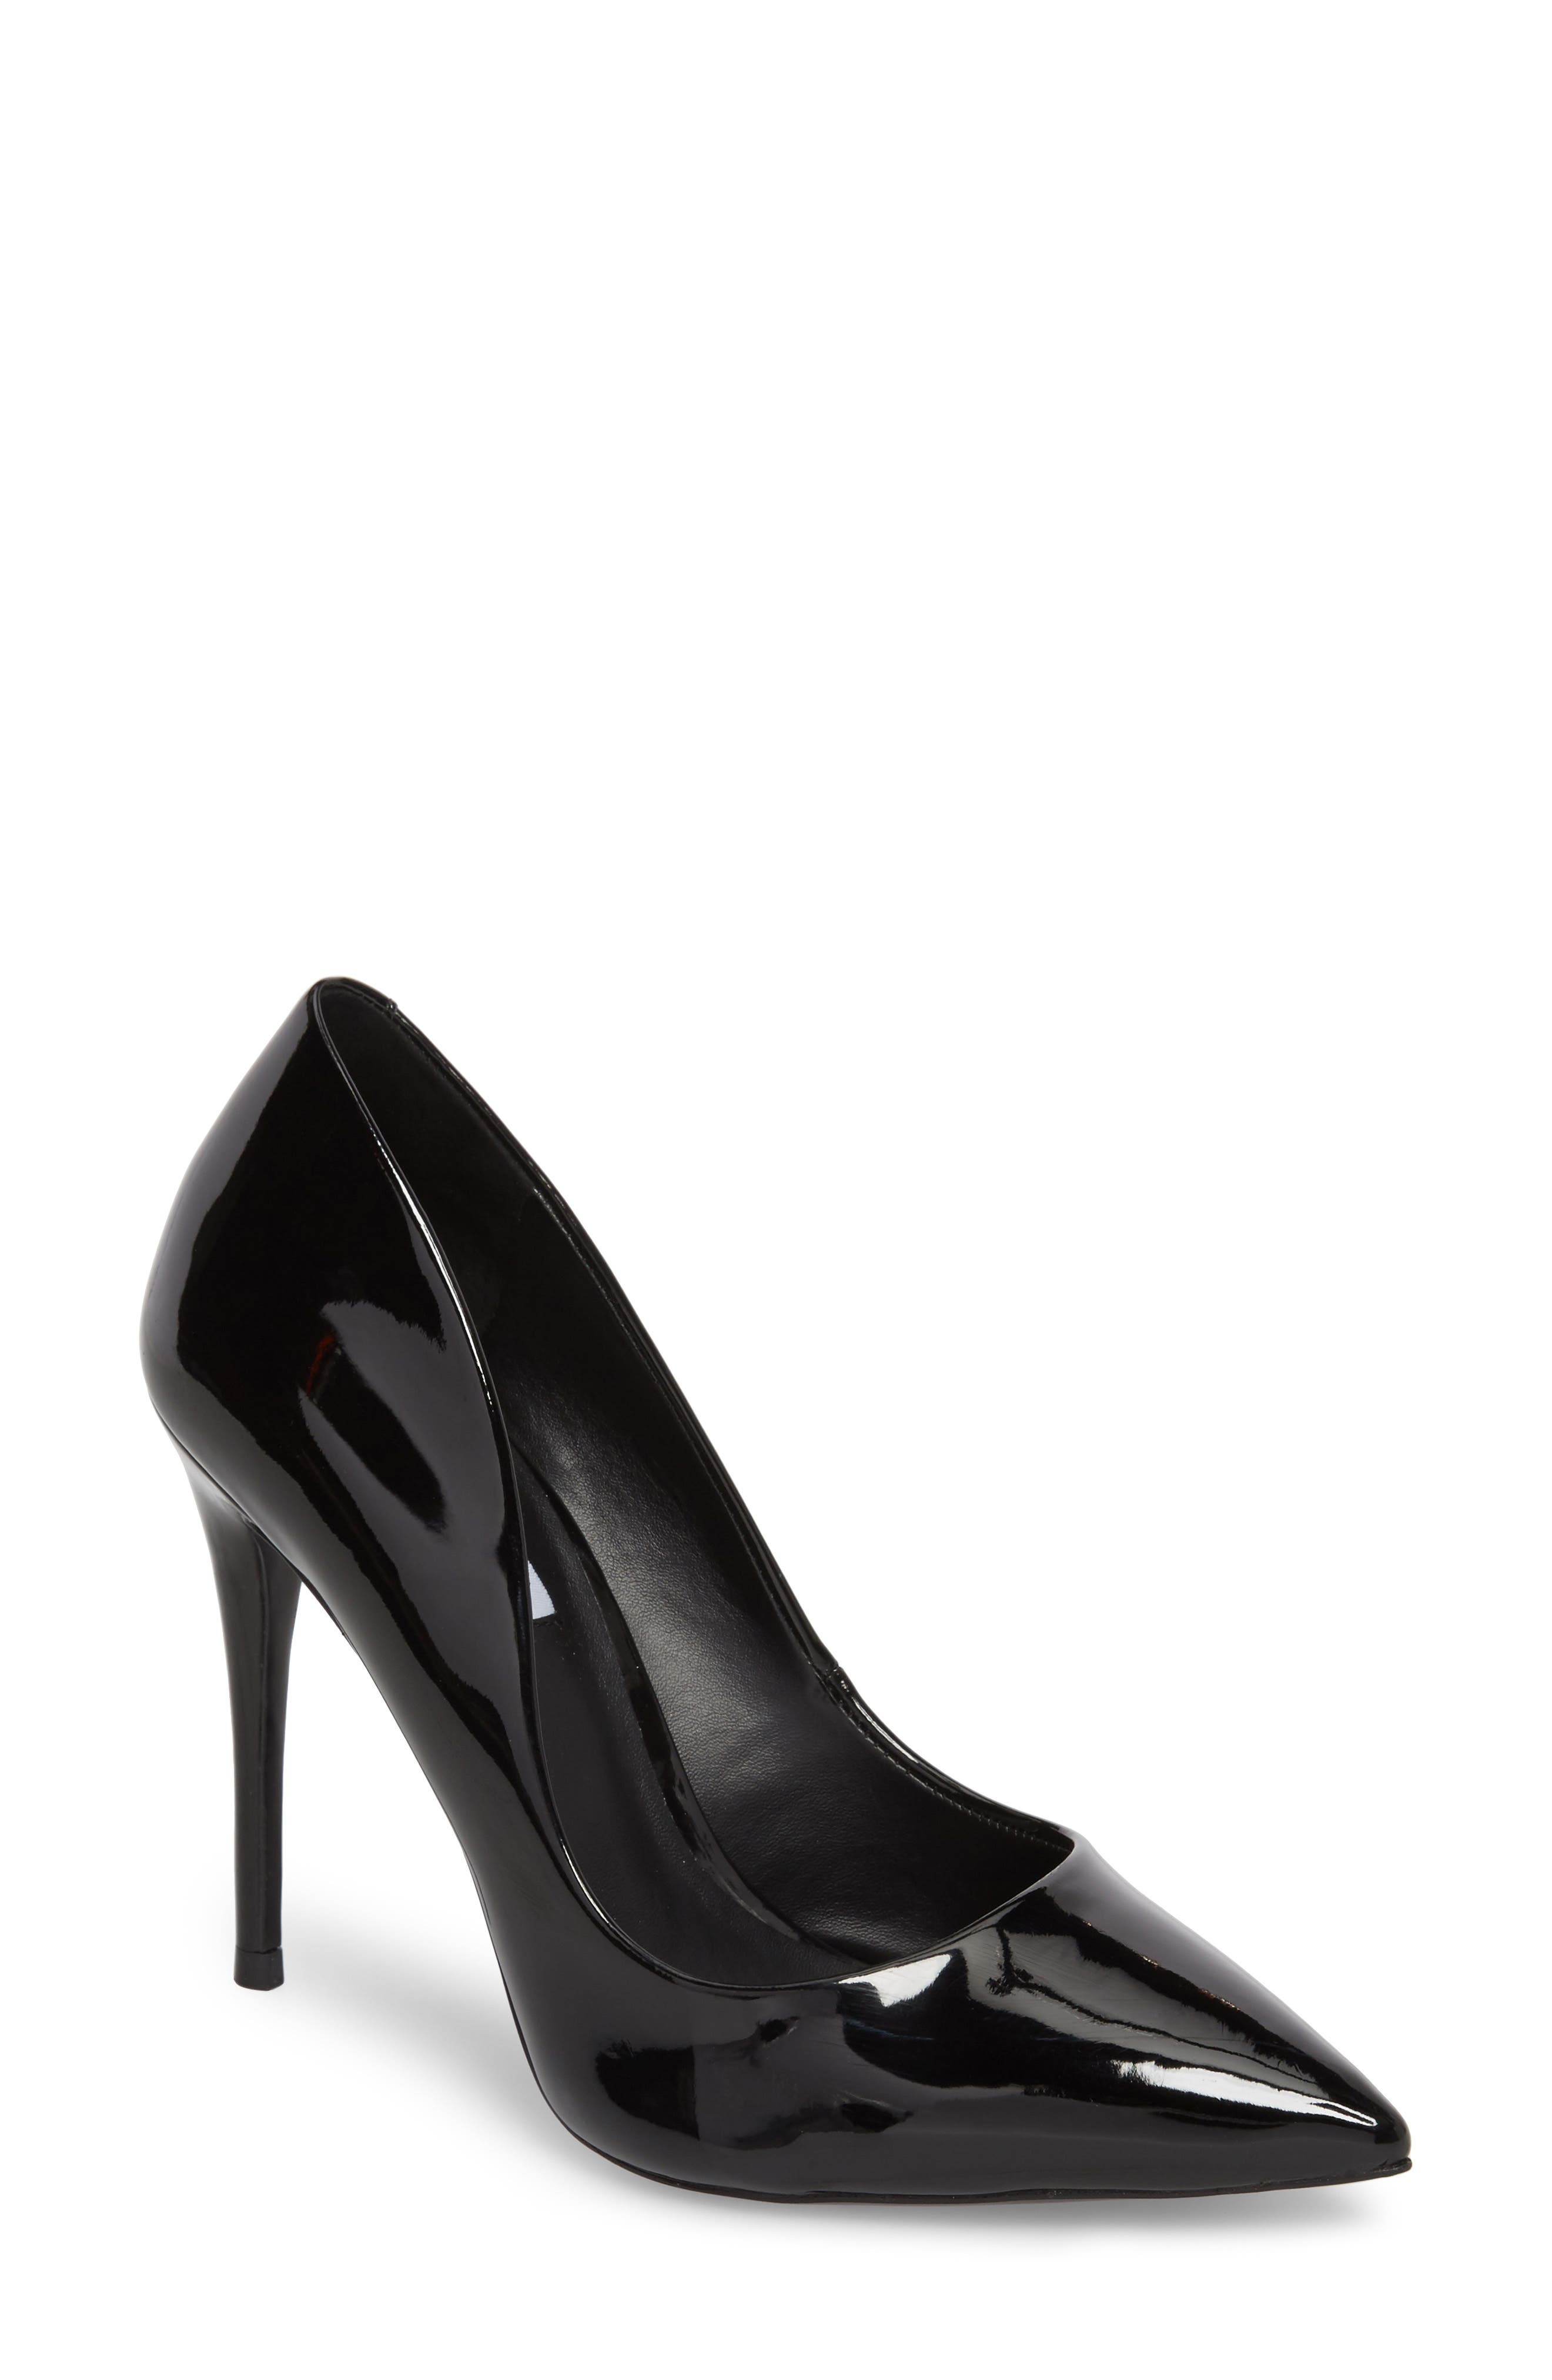 Main Image - Steve Madden Daisie Pointy-Toe Pump (Women)